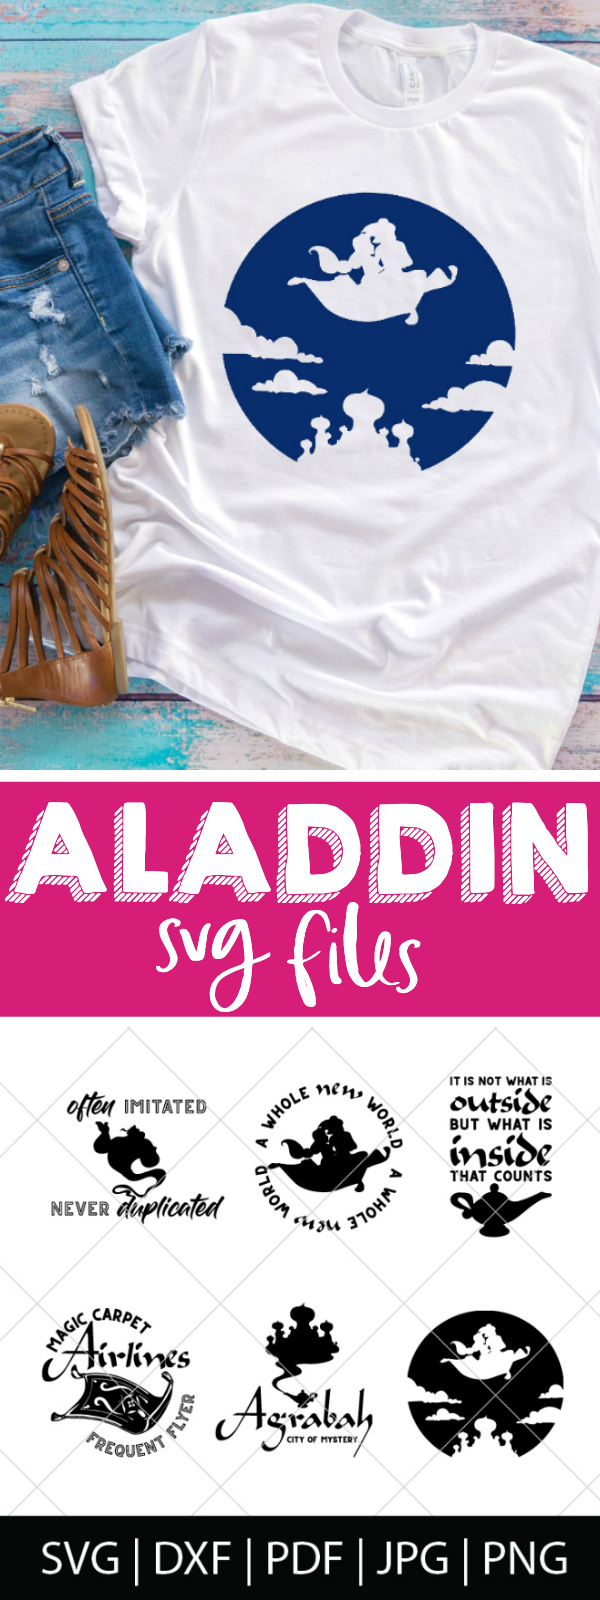 Who else loved Aladdin as a kid?! I'm excited for the new Disney live action Aladdin, so I made a new cut file bundle. Come check out our Aladdin SVG Bundle - perfect for making diy shirts for the movie theatre or Disney World as well as travel mugs, computer stickers and more! | THE LOVE NERDS #disneyshirt #disneyside #aladdinproject